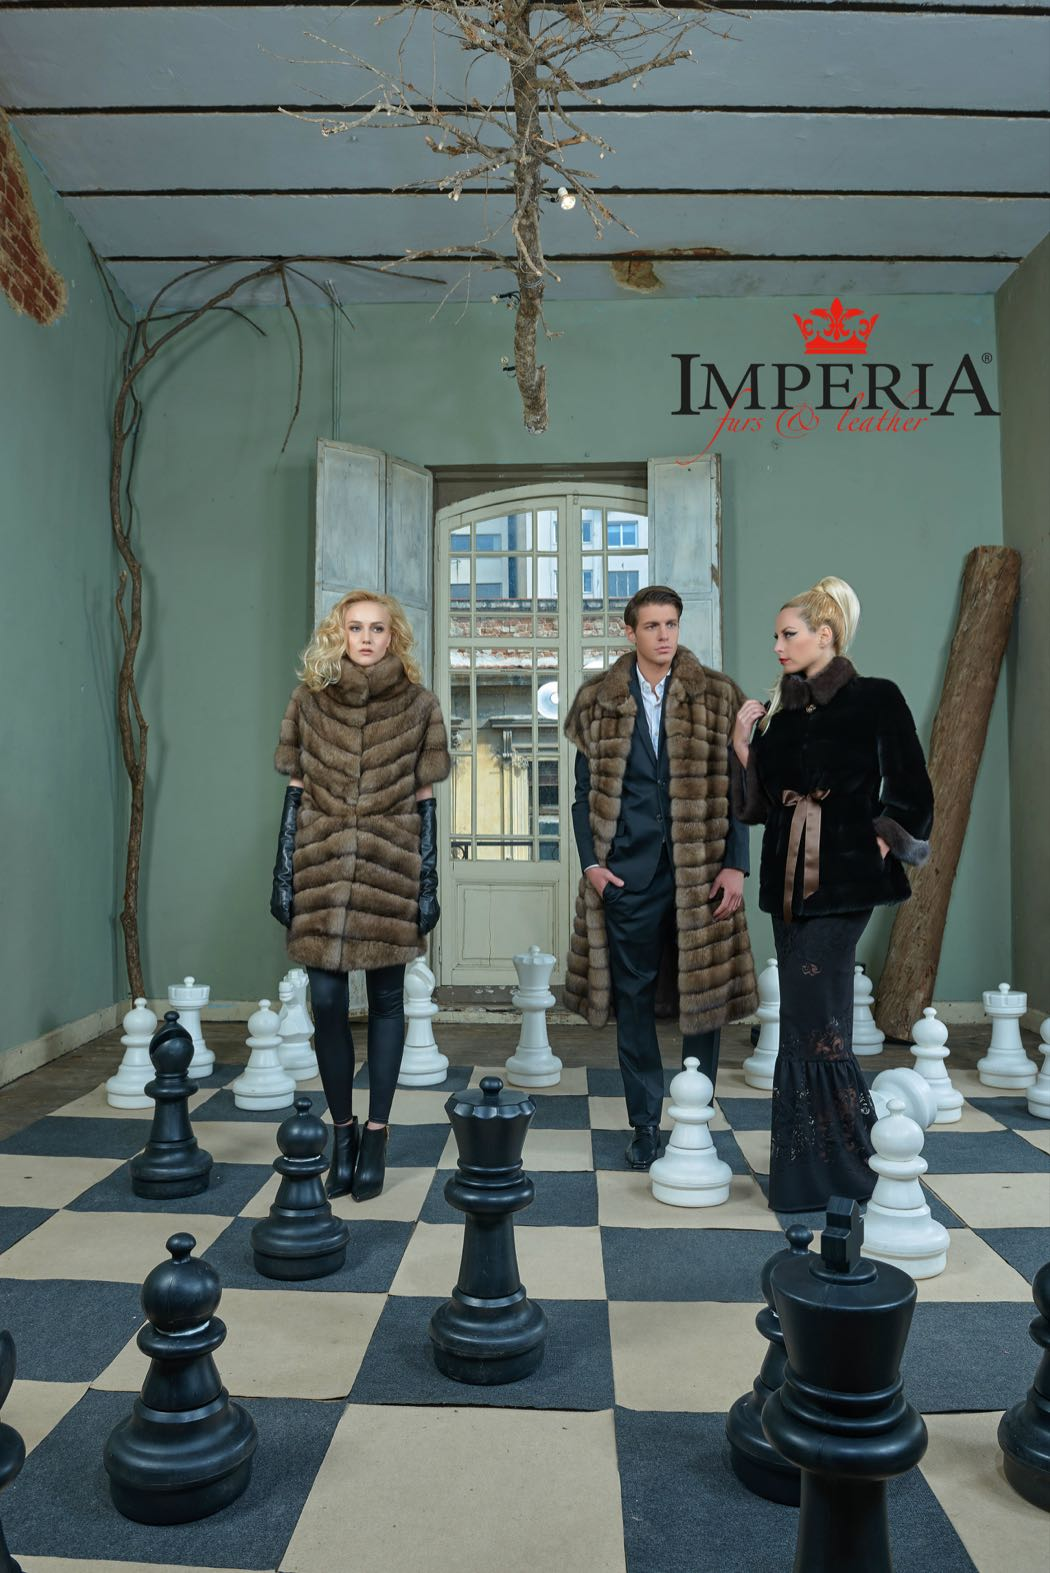 Keep The Cold Out With Imperia Furs & Leather